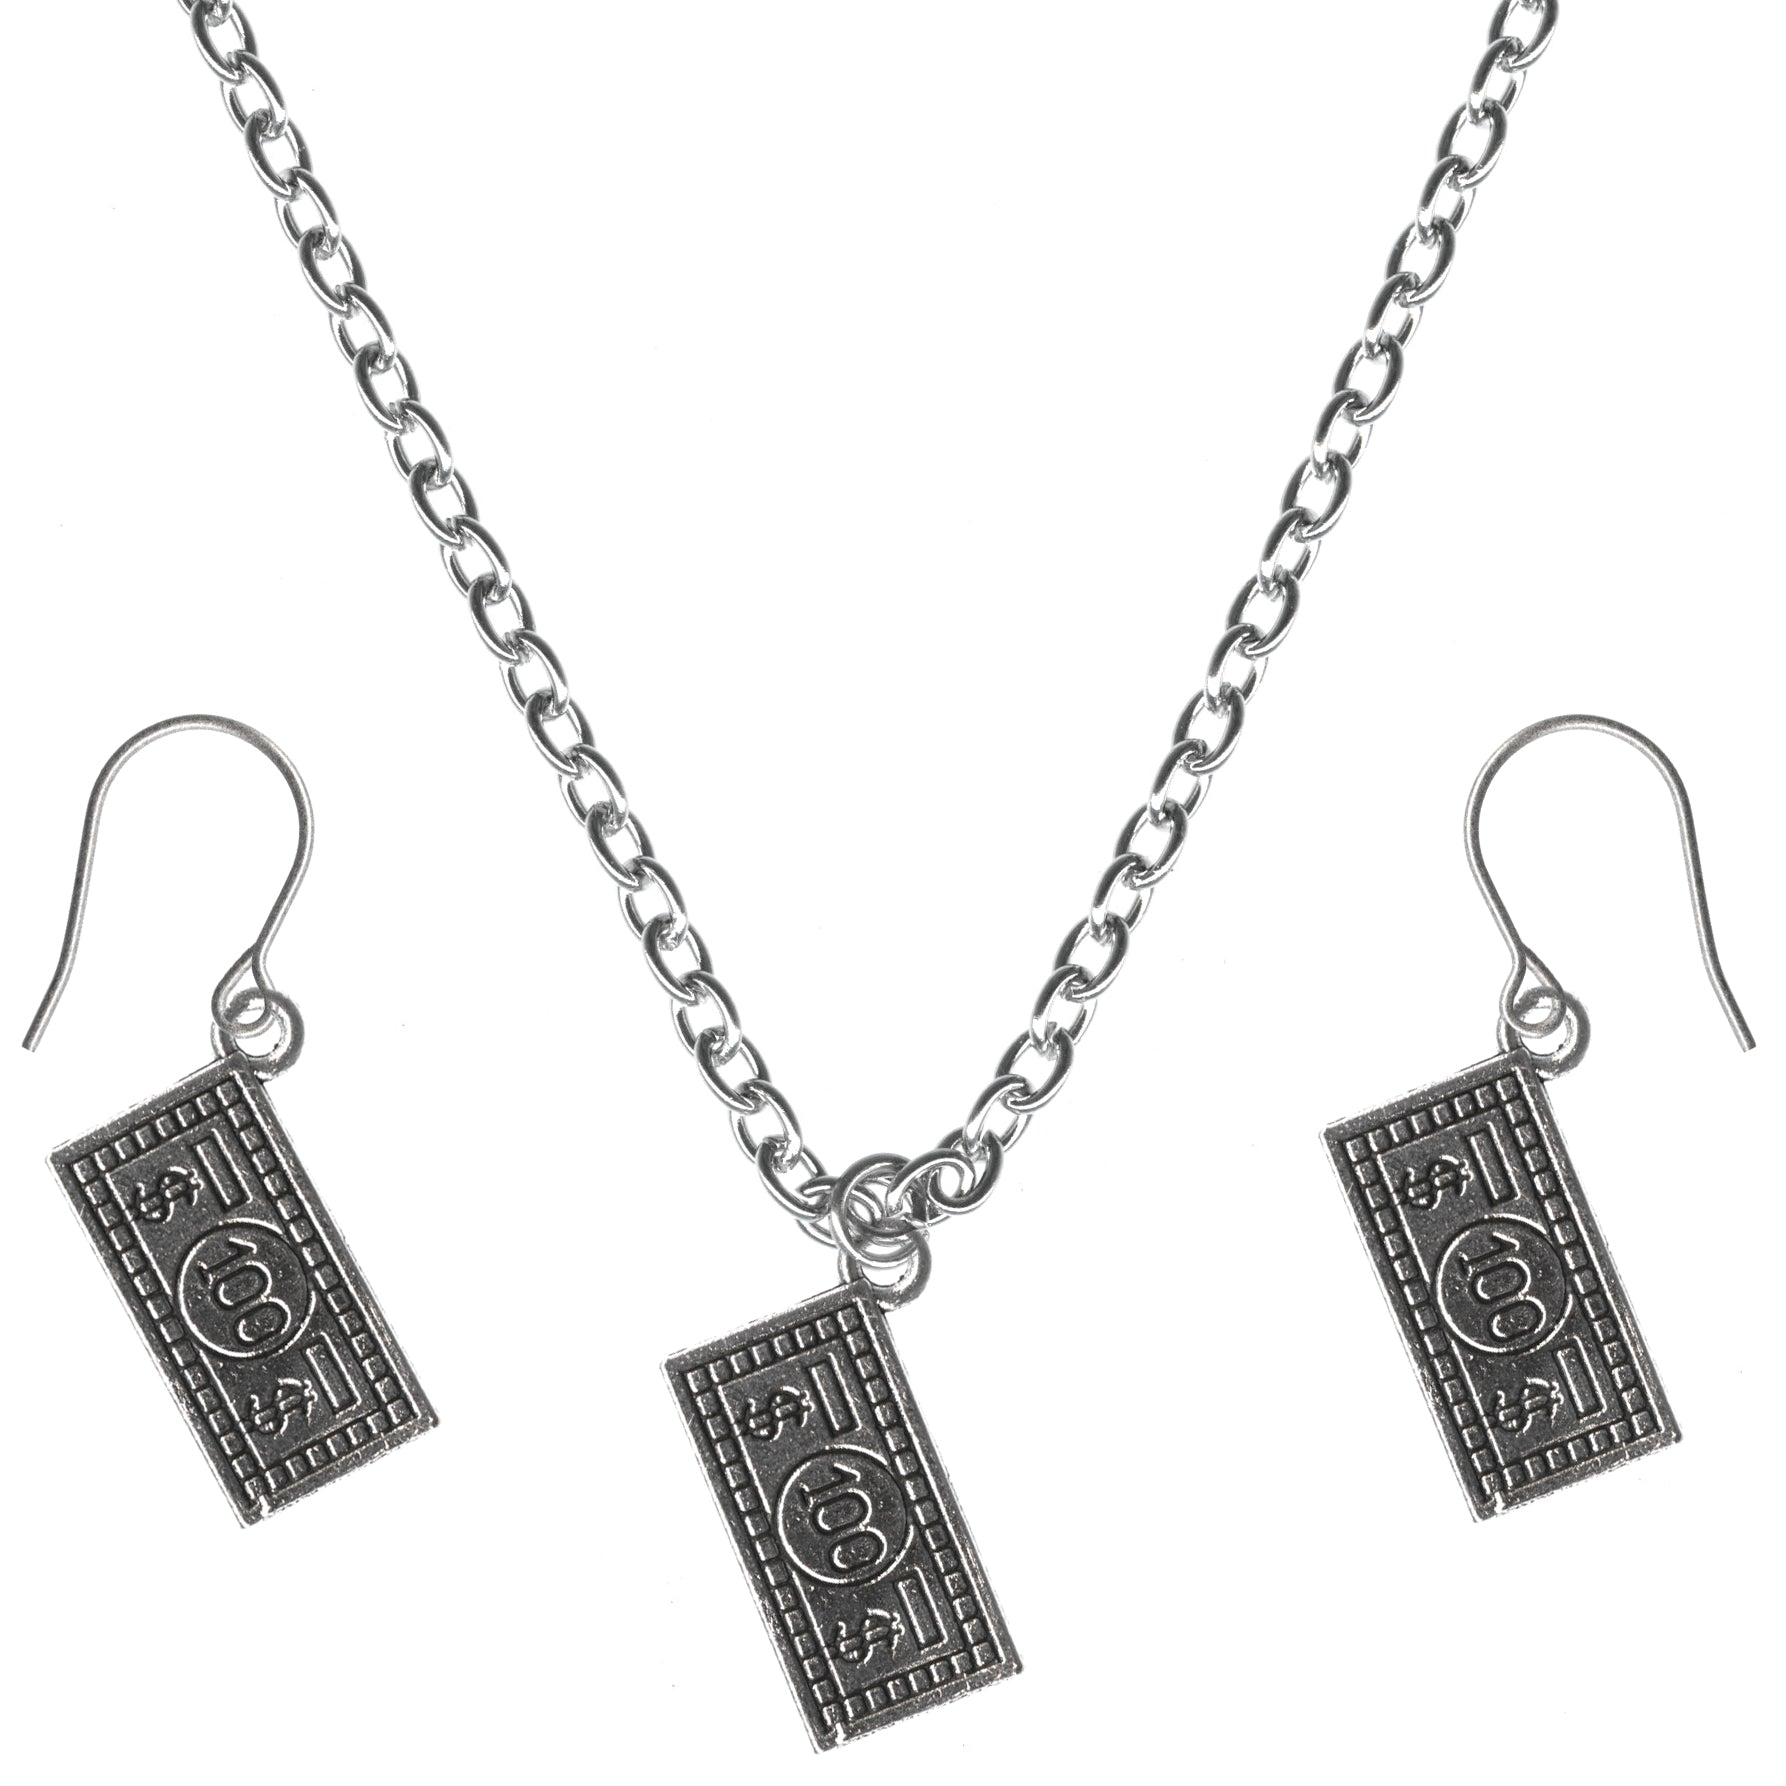 100 Dollar Bill Charm Steel Chain Necklace and Hypoallergenic Titanium Earrings Set